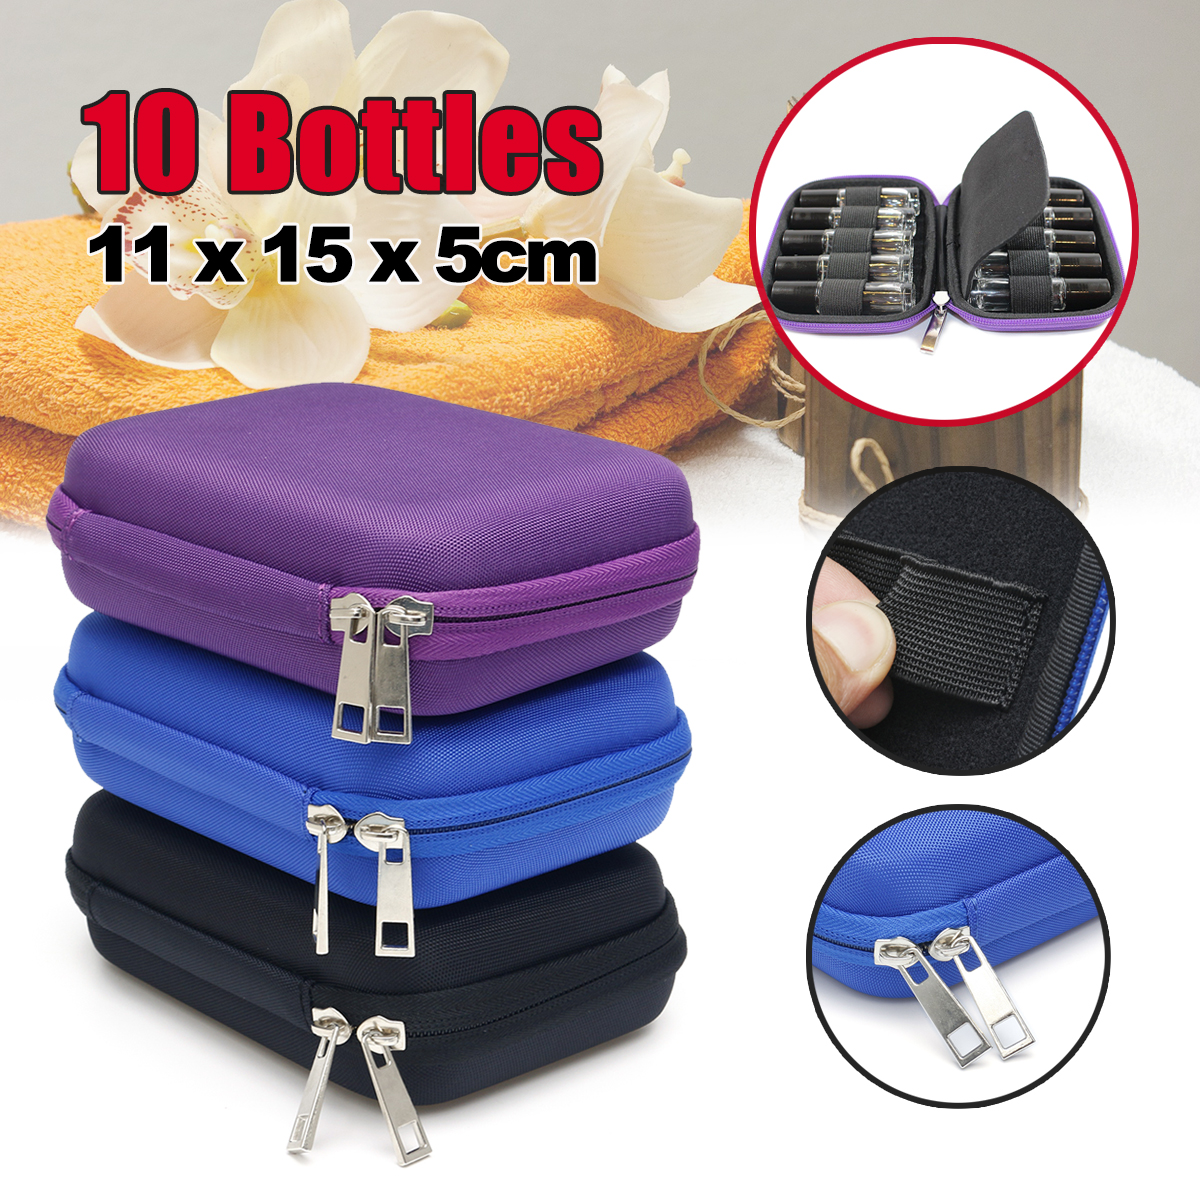 10 Bottles EVA Essential Oil Storage Bag Box Portable Carrying C